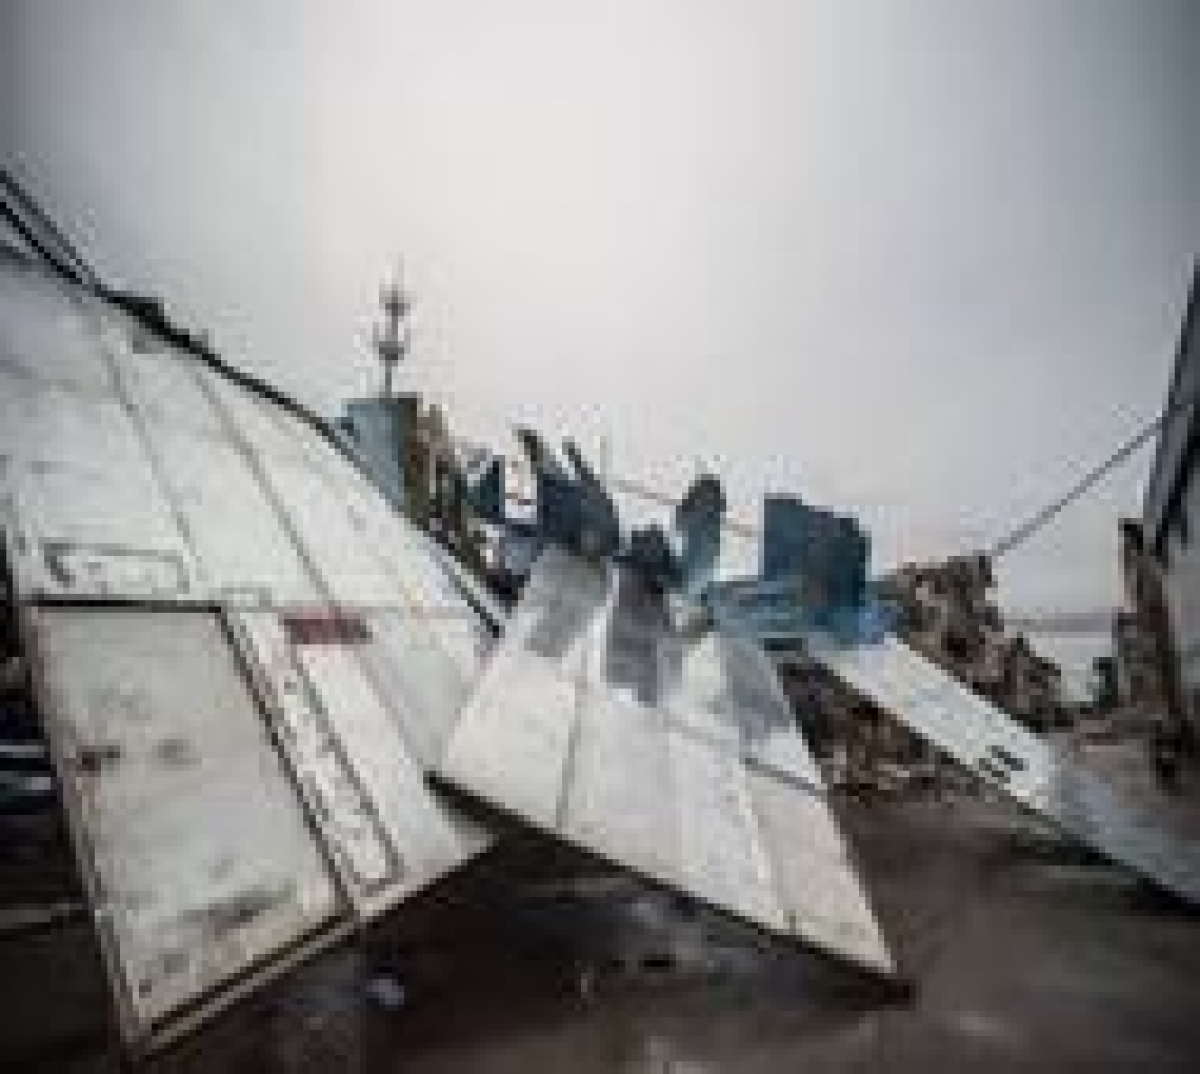 1 killed, 11 injured as Tornado hits south China